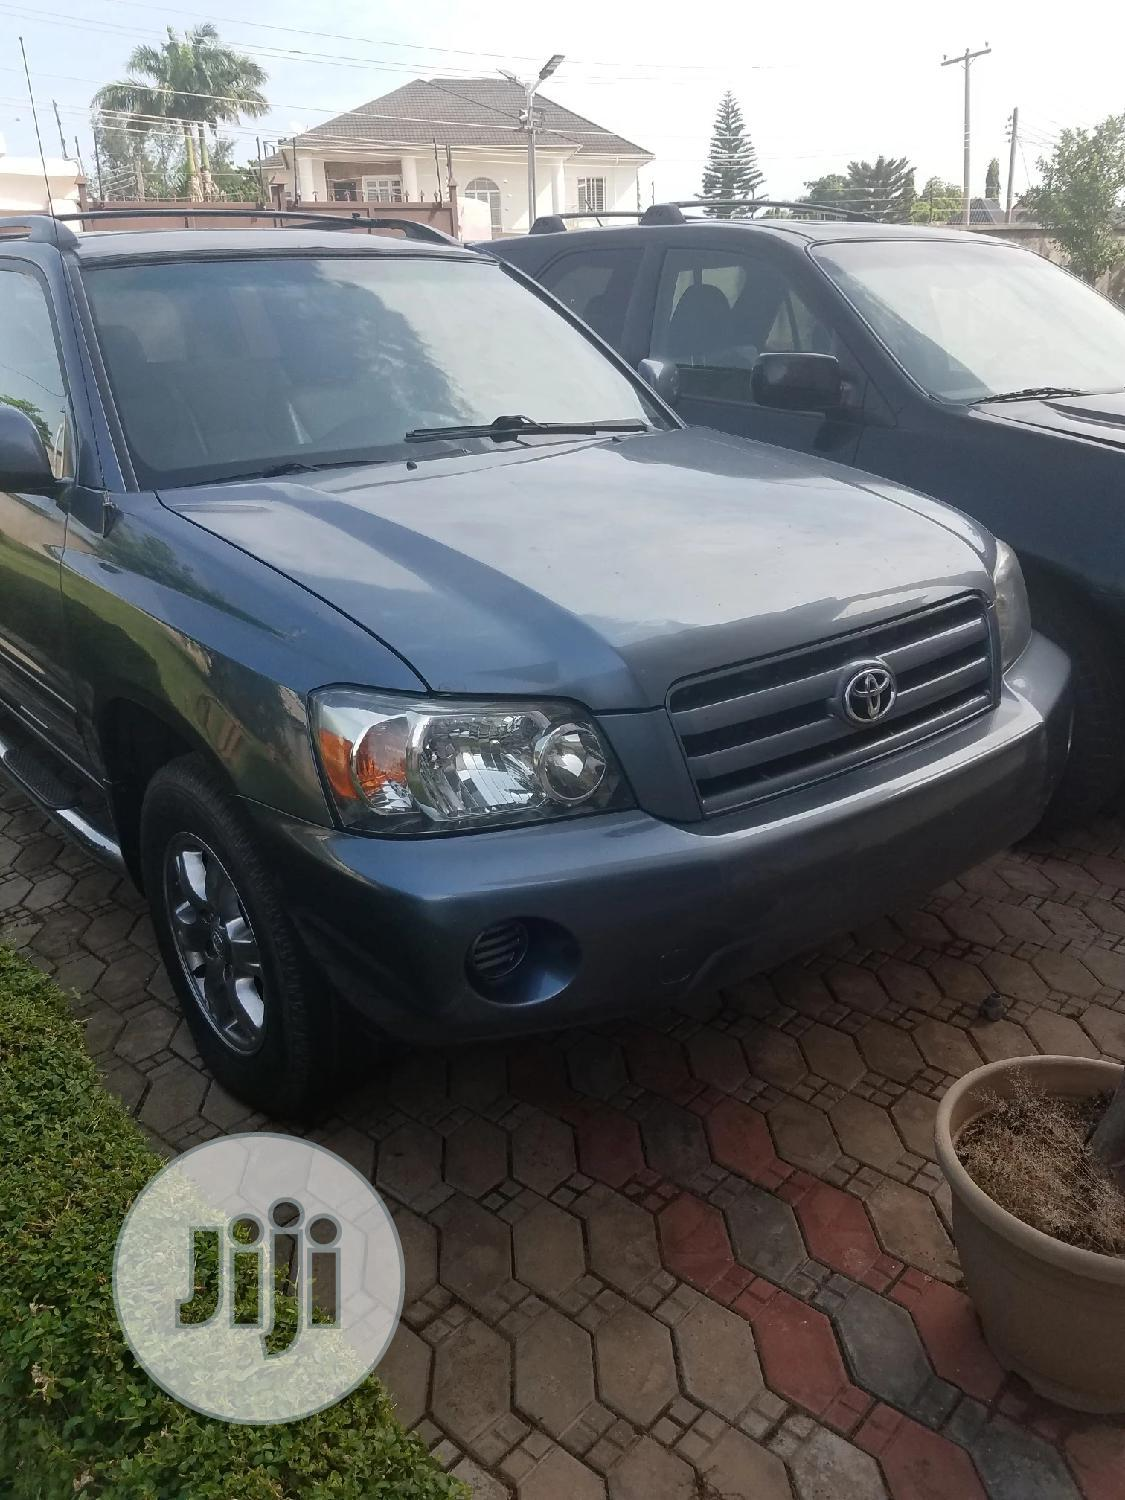 Archive: Toyota Highlander 2004 Limited V6 4x4 Blue